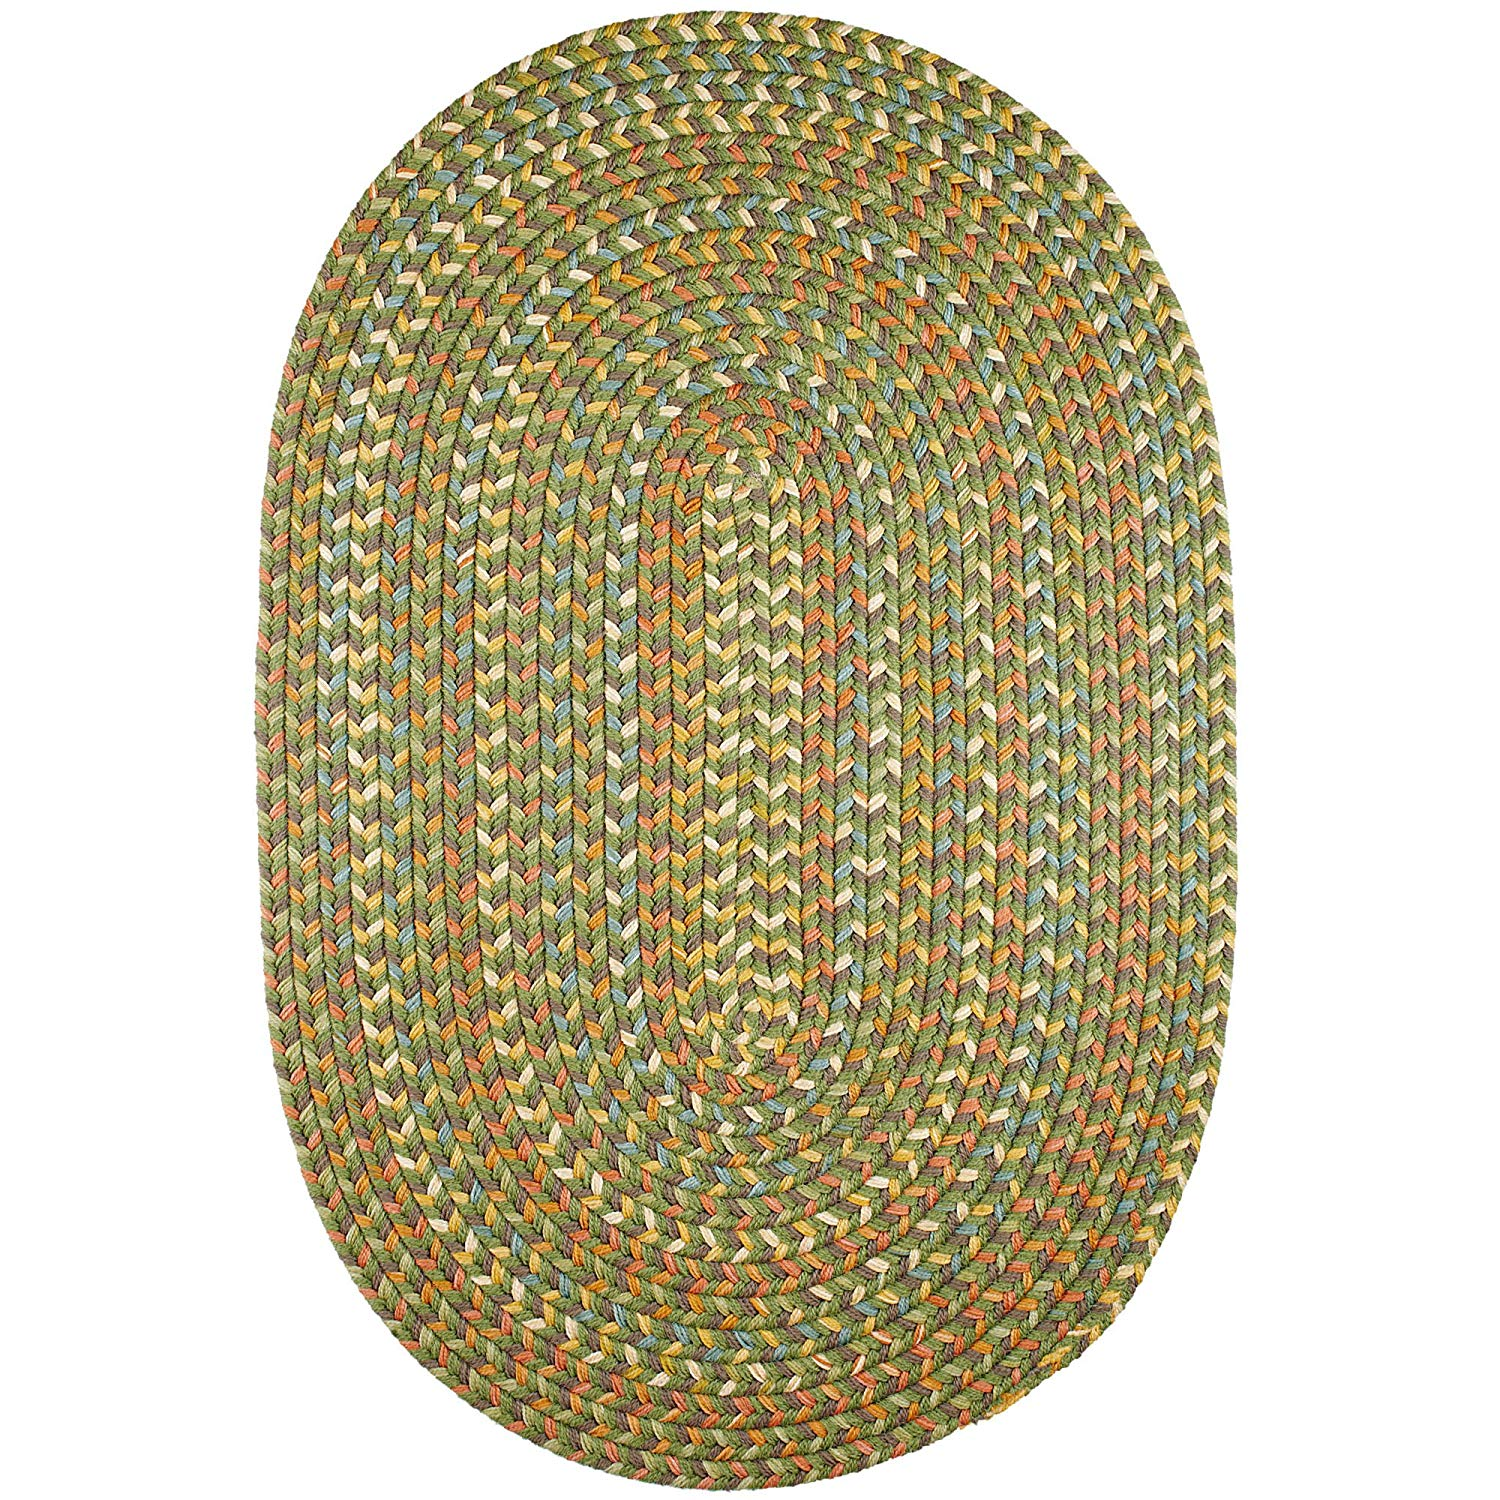 Super Area Rugs Confetti Braided Rug Traditional Rug Textured Durable Green Casual Decor Carpet, 10' X 13' Oval